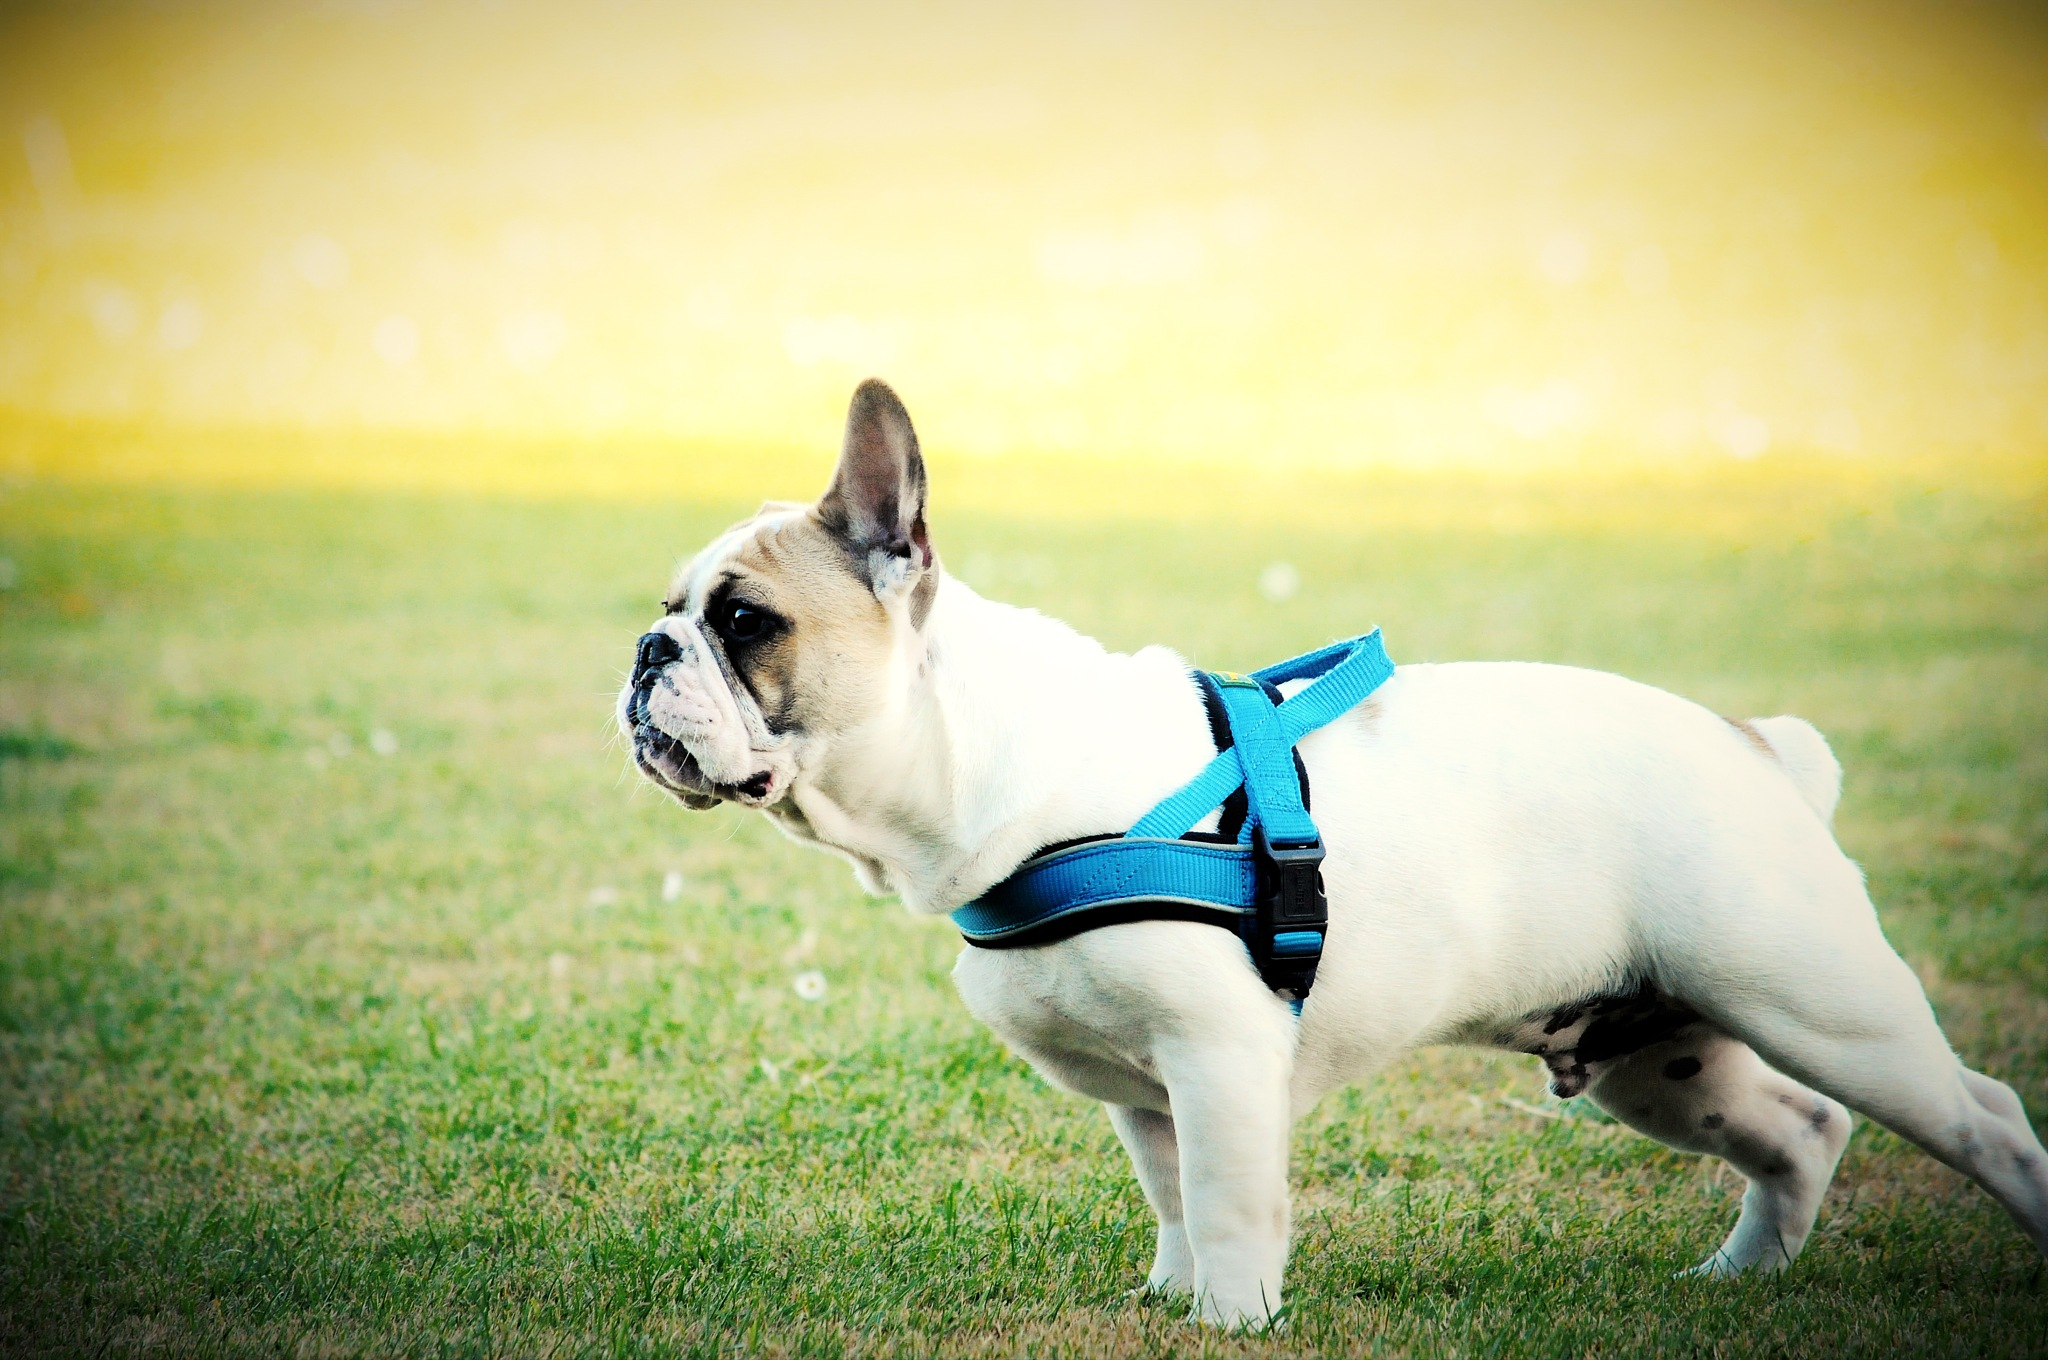 french Bull dog by Chuculain